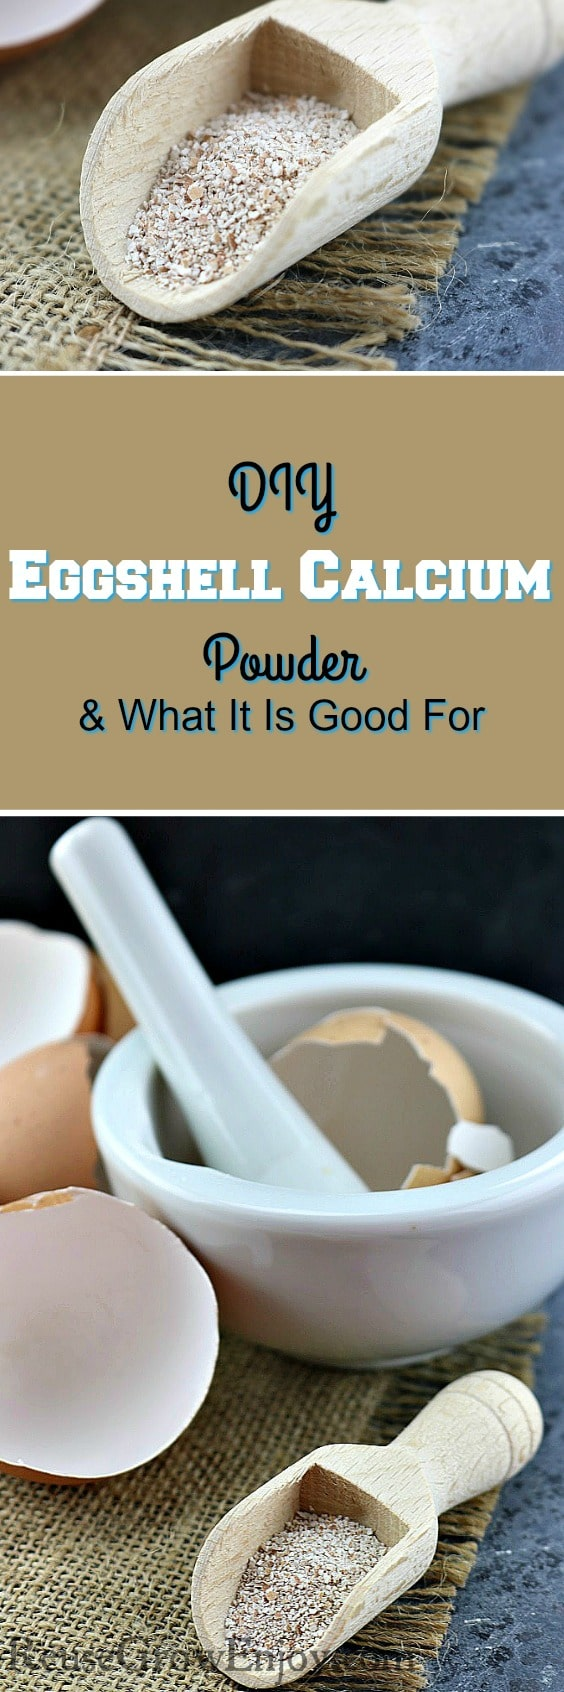 Need to add calcium to your diet? Check out this DIY Eggshell Calcium Powder & What It Is Good For!